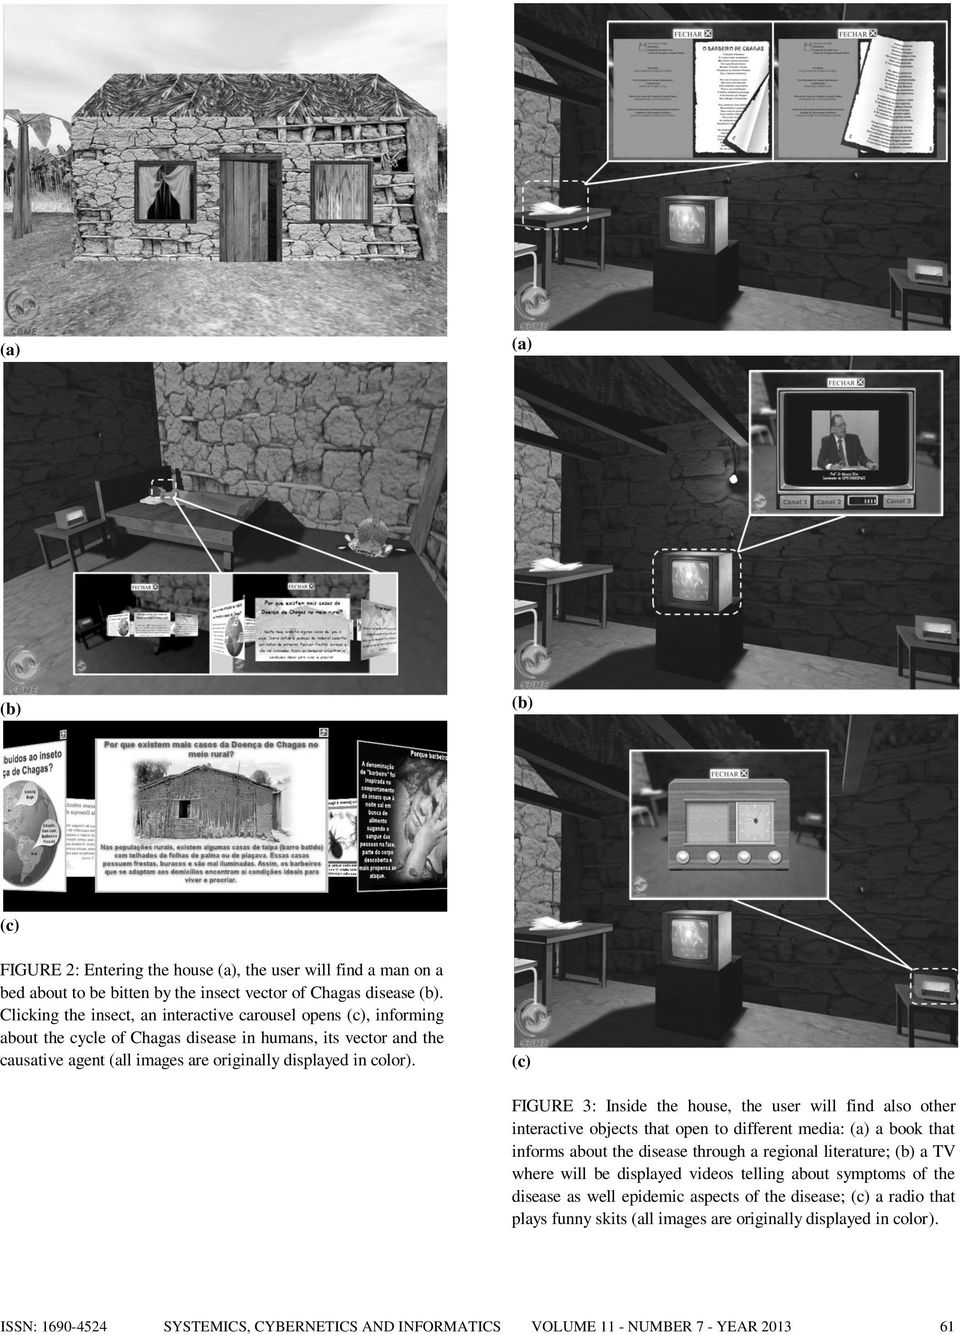 FIGURE 3: Inside the house, the user will find also other interactive objects that open to different media: (a) a book that informs about the disease through a regional literature; a TV where will